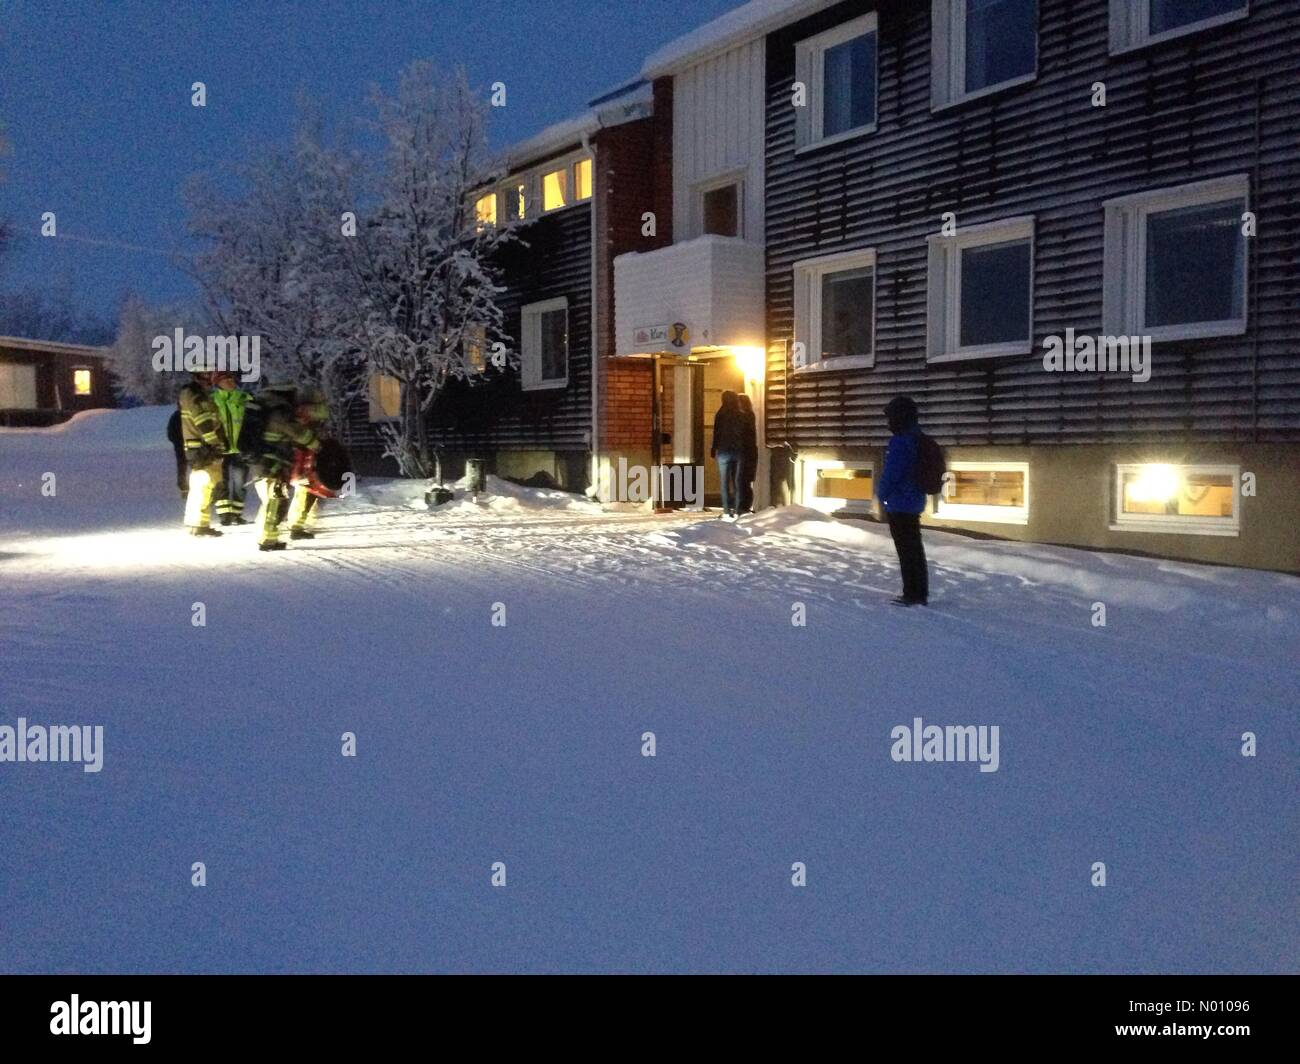 Kiruna, Sweden. 29th Jan 2019. Hostel in Kiruna Sweden evacuated in -20 degrees do to fire alarm. Fire service arrived to vent smoke from a guest kitchen Credit: JHpics/StockimoNews/Alamy Live News - Stock Image